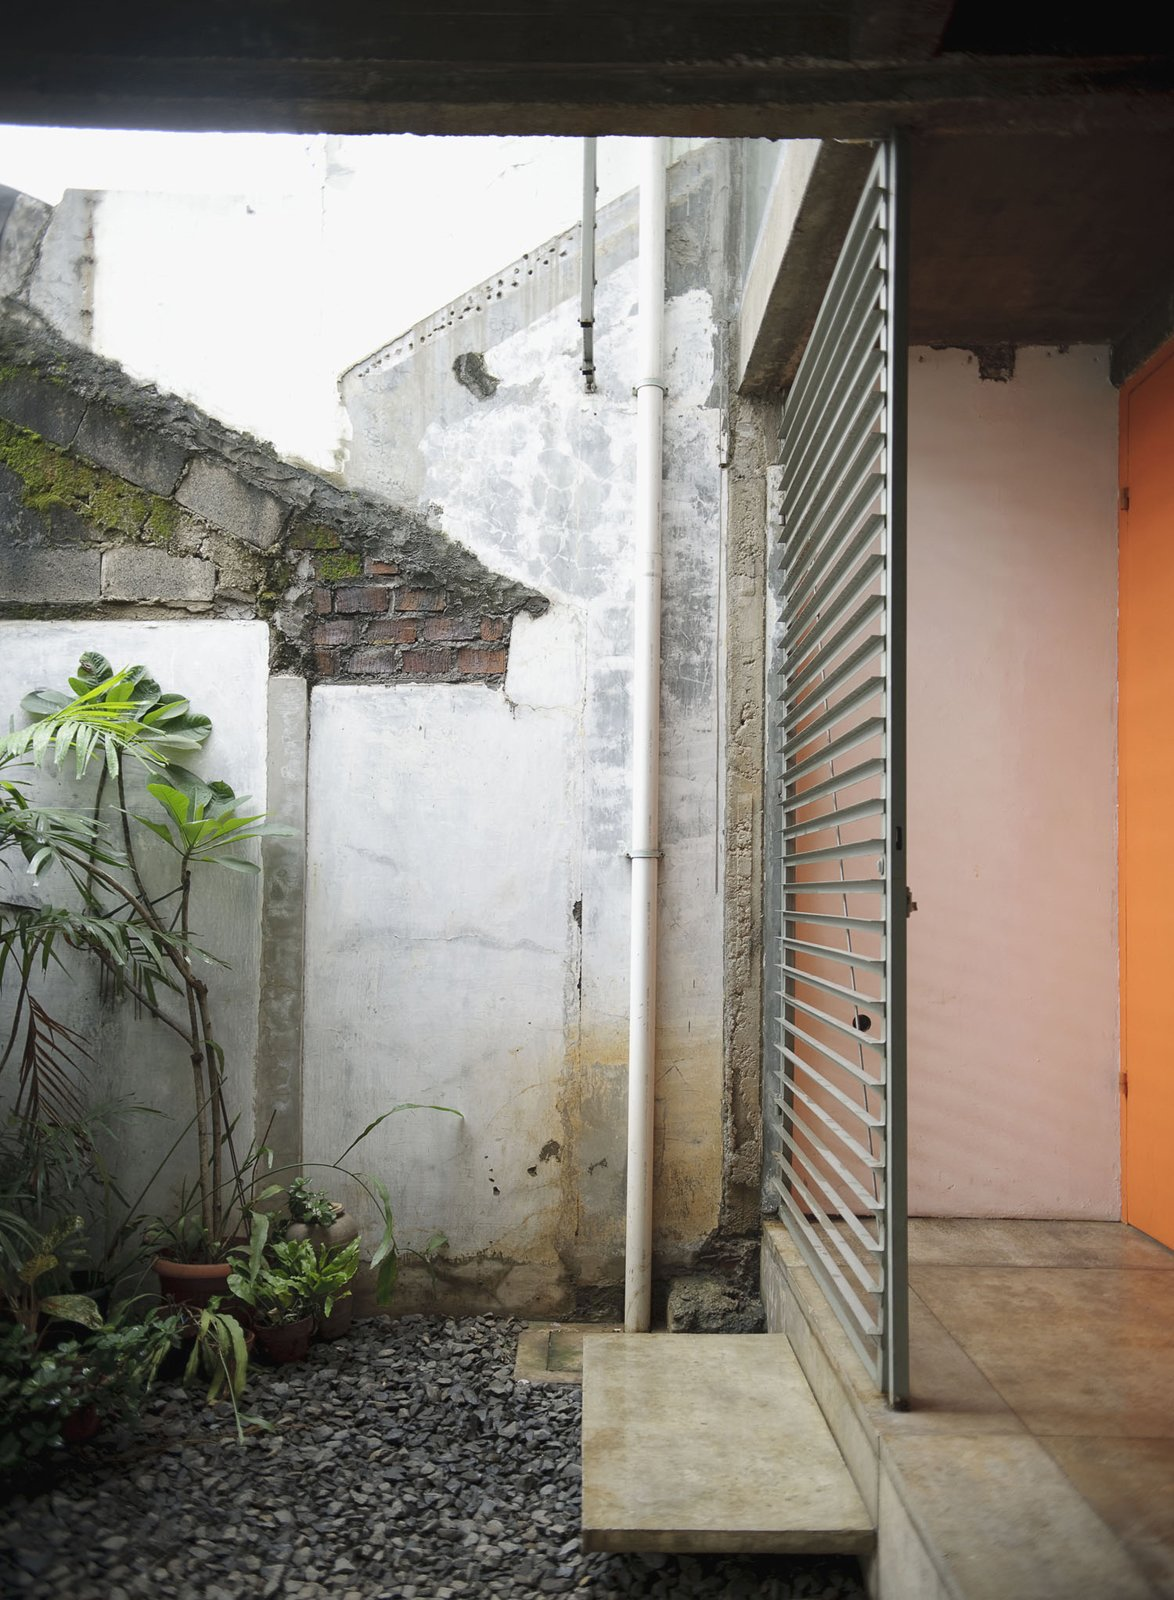 An orange door and metal grille make for a warm, if industrial, contrast to the stones and plants on the patio. They also weather well, something critical in a place where the climate leads to a palpable sense of decay. Humid City, Cool Home - Photo 17 of 26